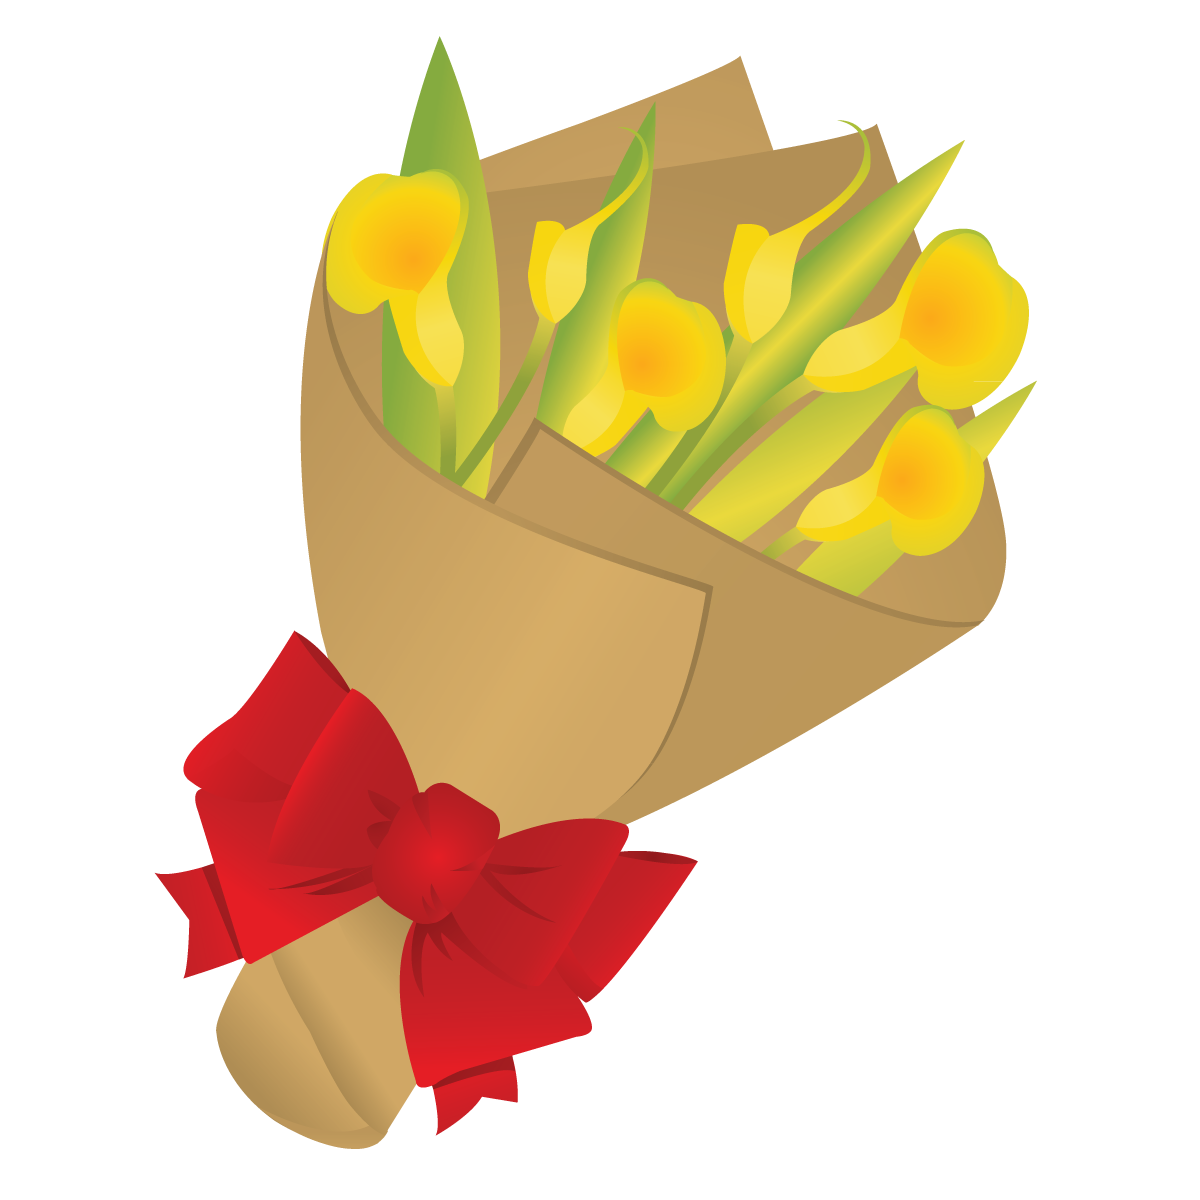 Clip Art Mothers Day - Cliparts.co